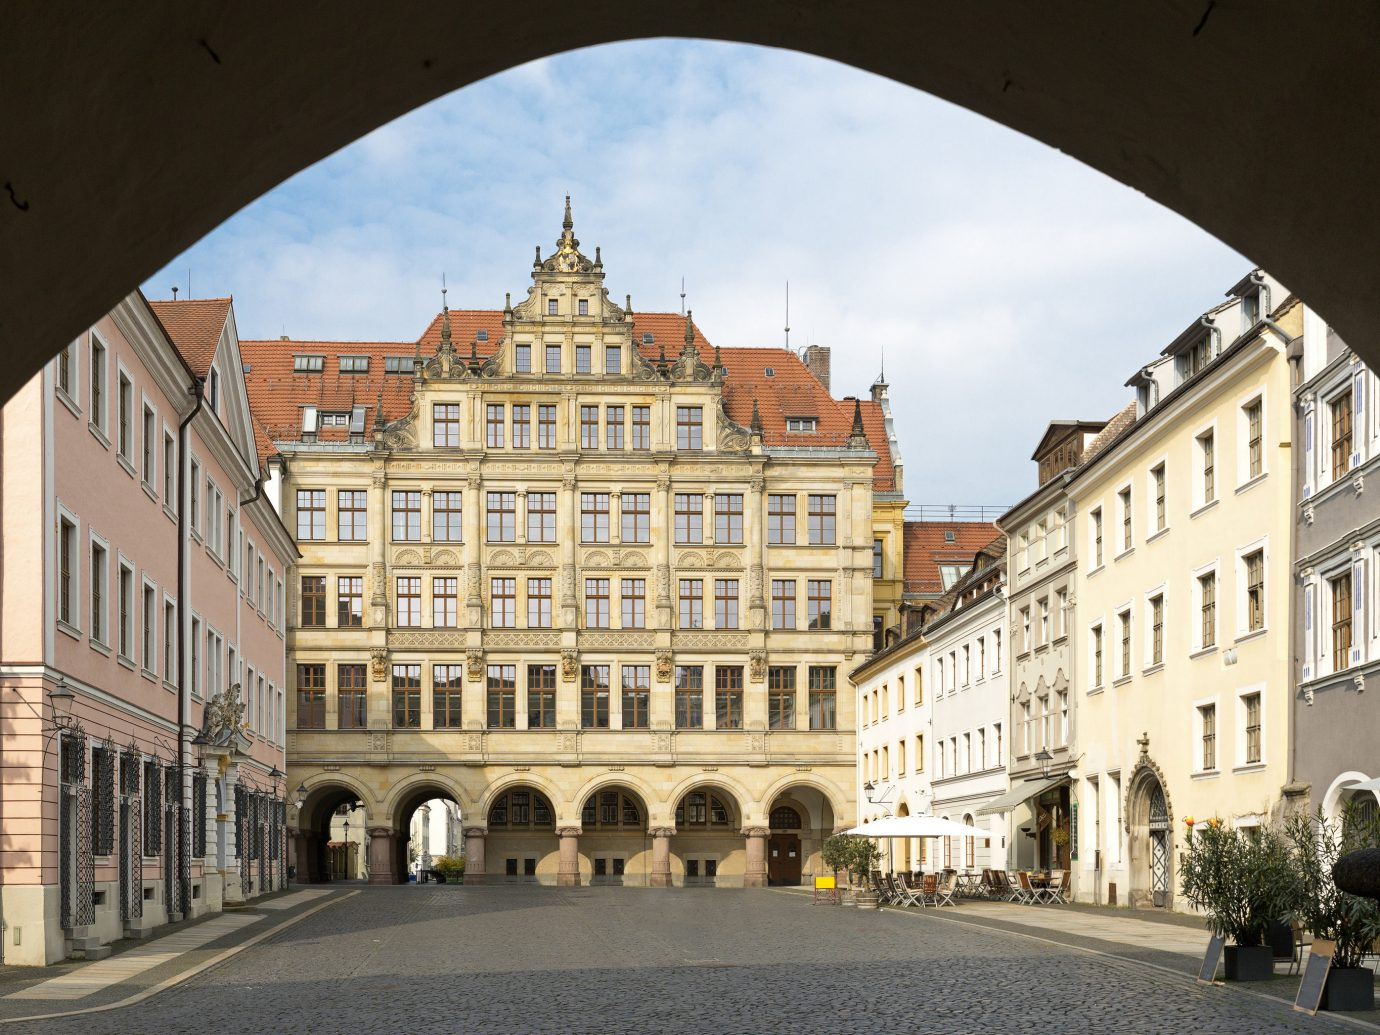 Berlin europe Germany Trip Ideas Town landmark building town square plaza château City sky medieval architecture arch classical architecture facade metropolis neighbourhood window metropolitan area street palace history Downtown arcade seat of local government historic site tourism